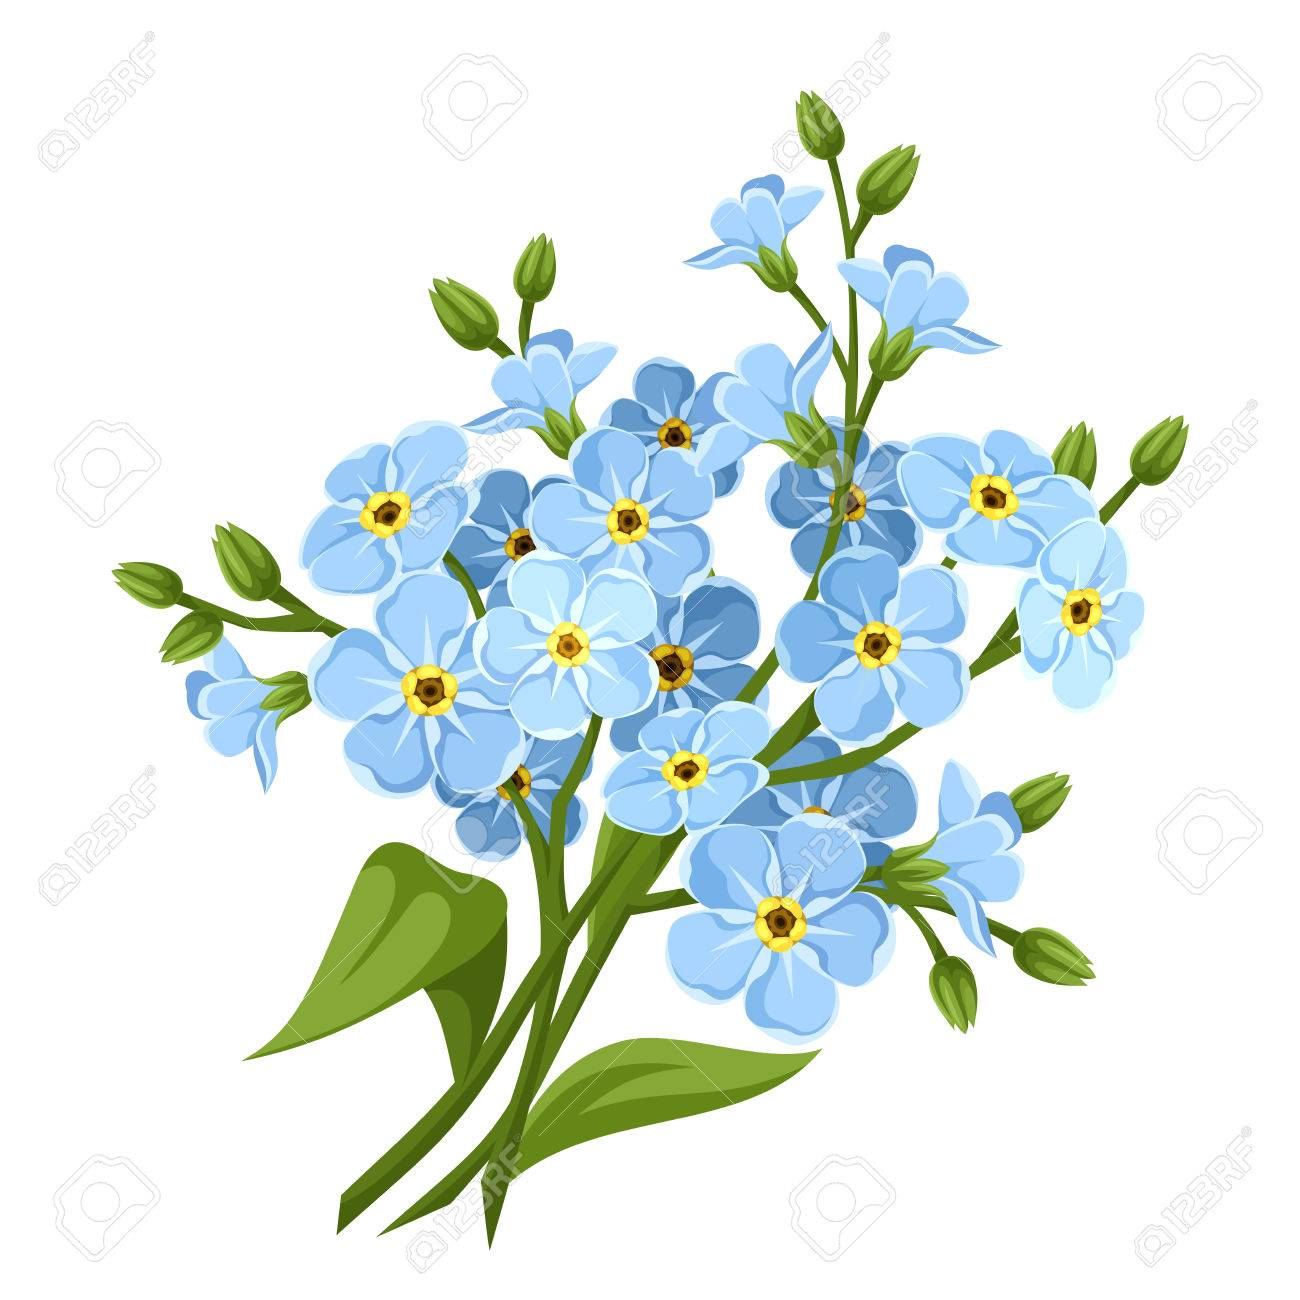 Blue Forget Me Not Flowers Vector Illustration Royalty Free